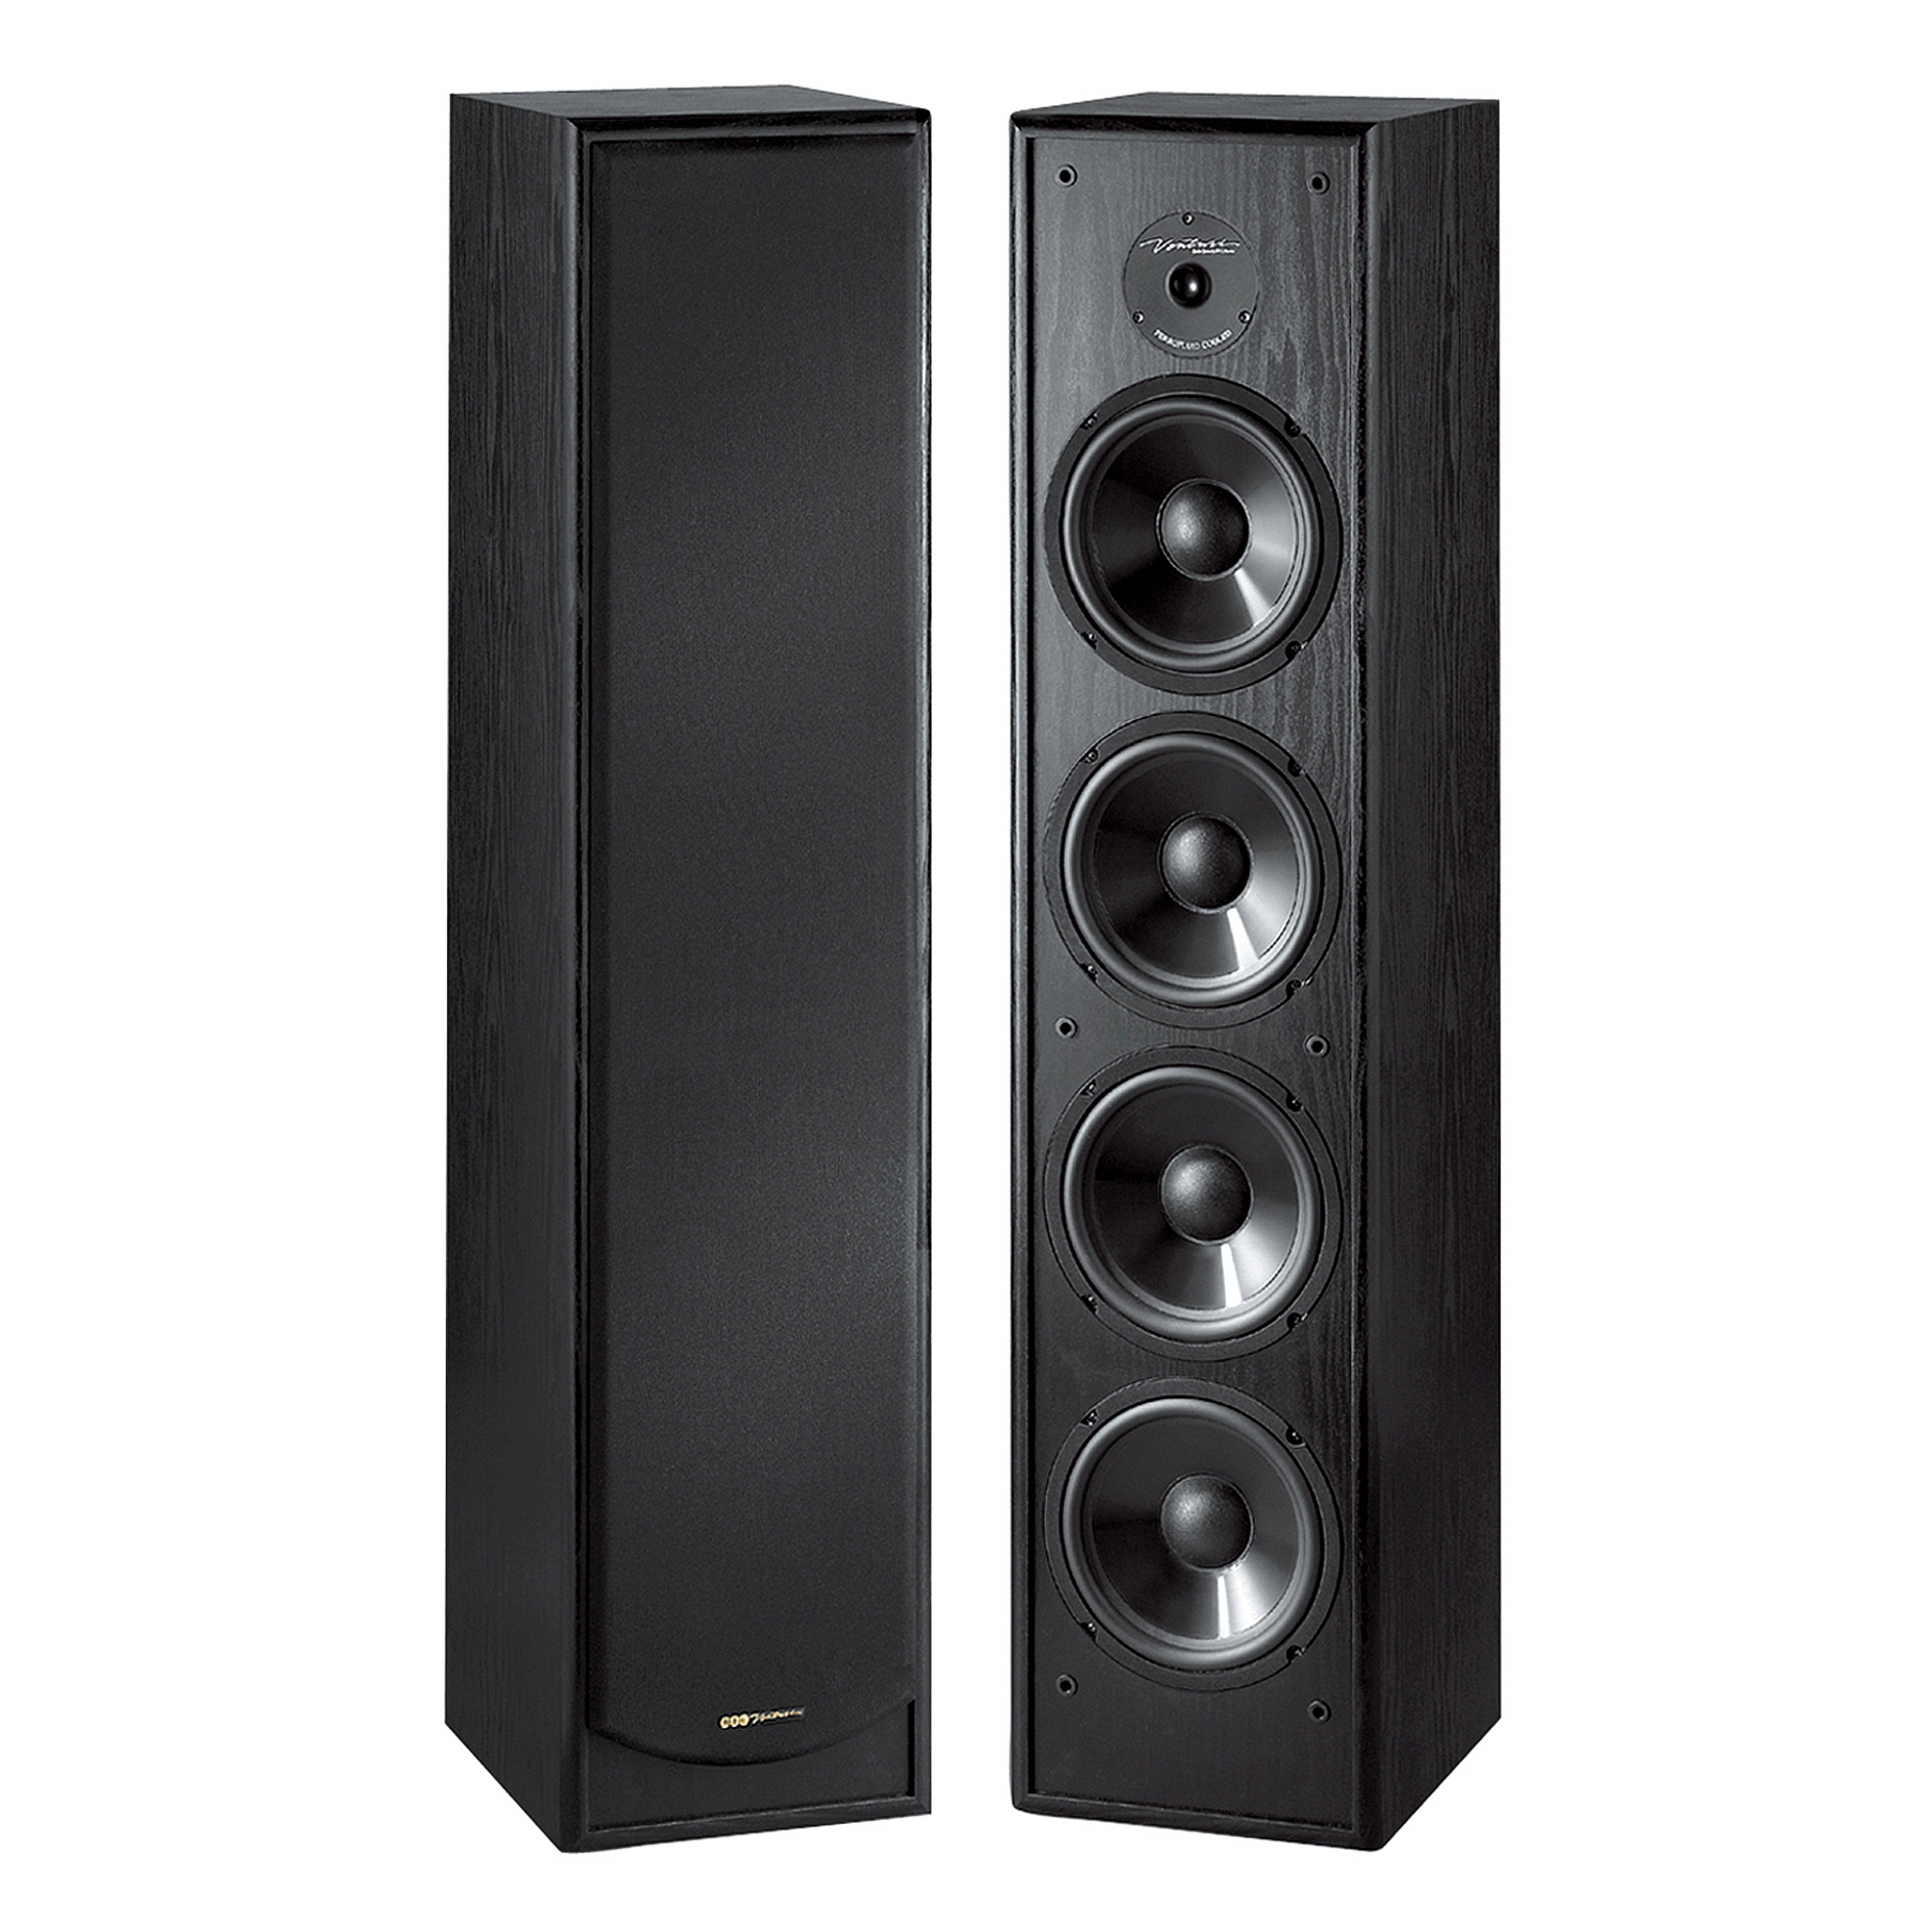 Bic Venturi Dv64 200w 2 Way Slim Design Tower Speaker Dual Active 6 1 2 Woofers Dual 6 1 2 Passive Radiators Bic America